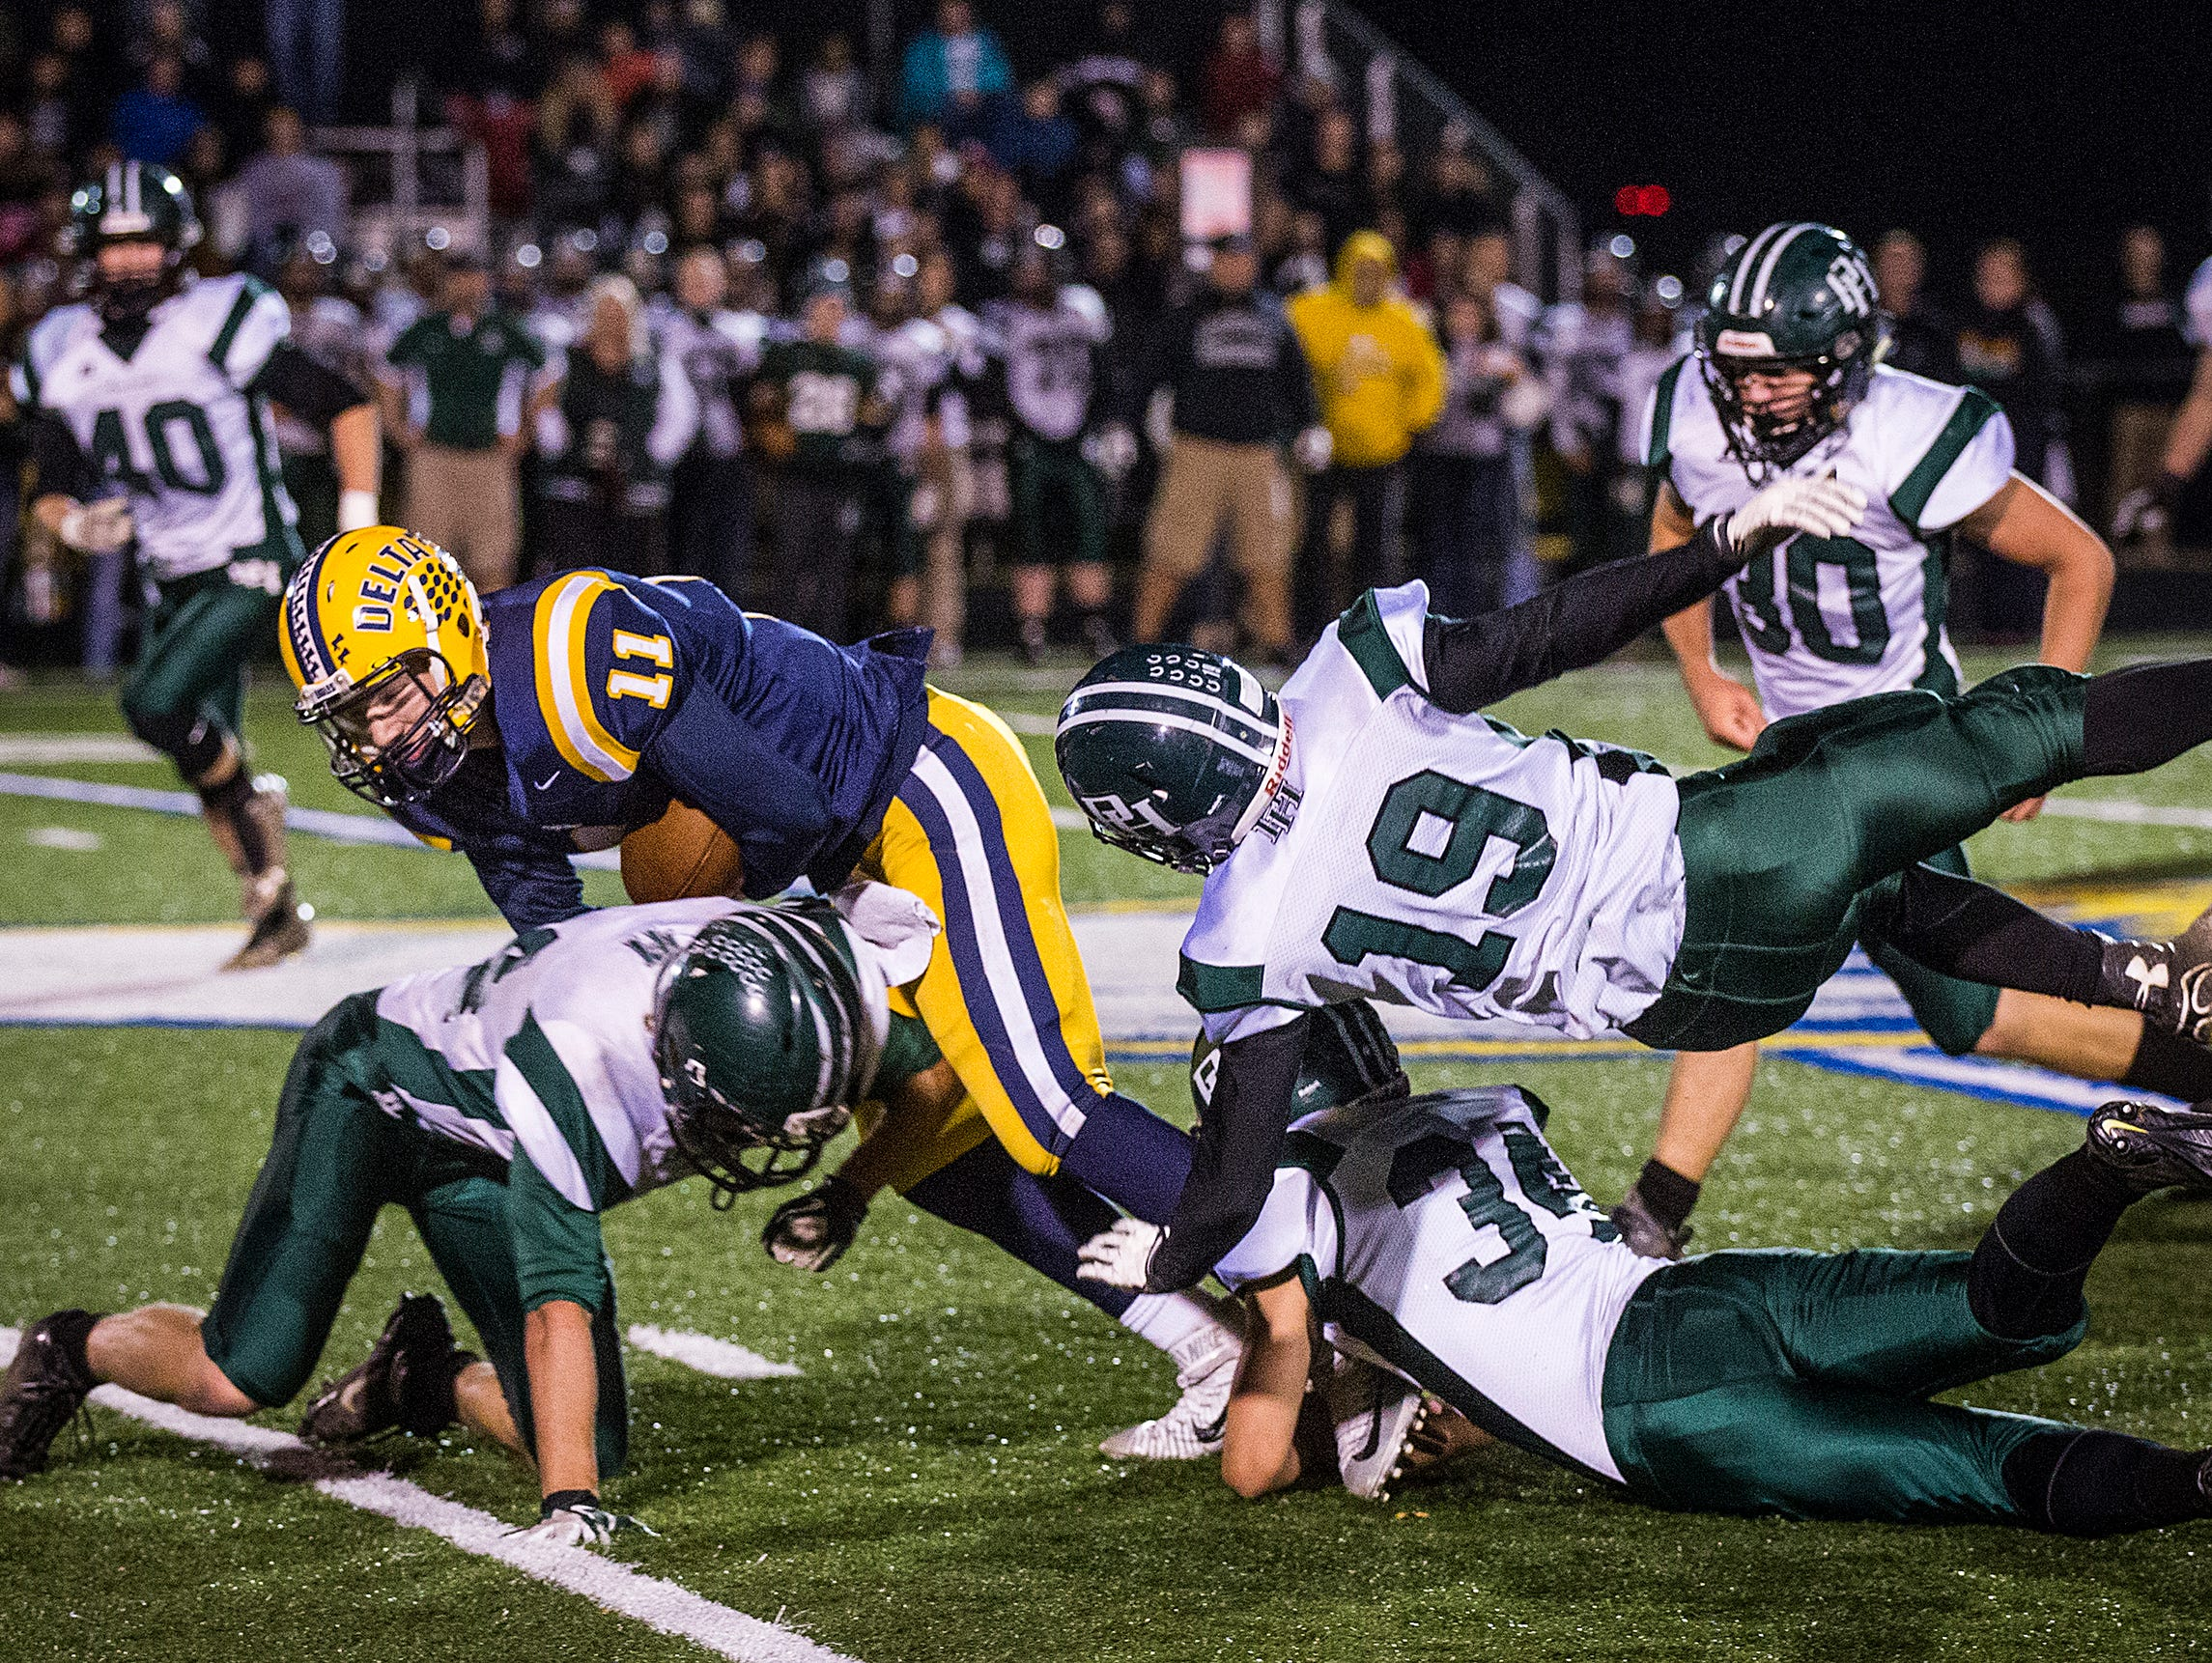 Delta's Ryley Pease fights for yards against Pendleton Heights's defense during their game at Delta High School Friday, Nov. 6, 2015.